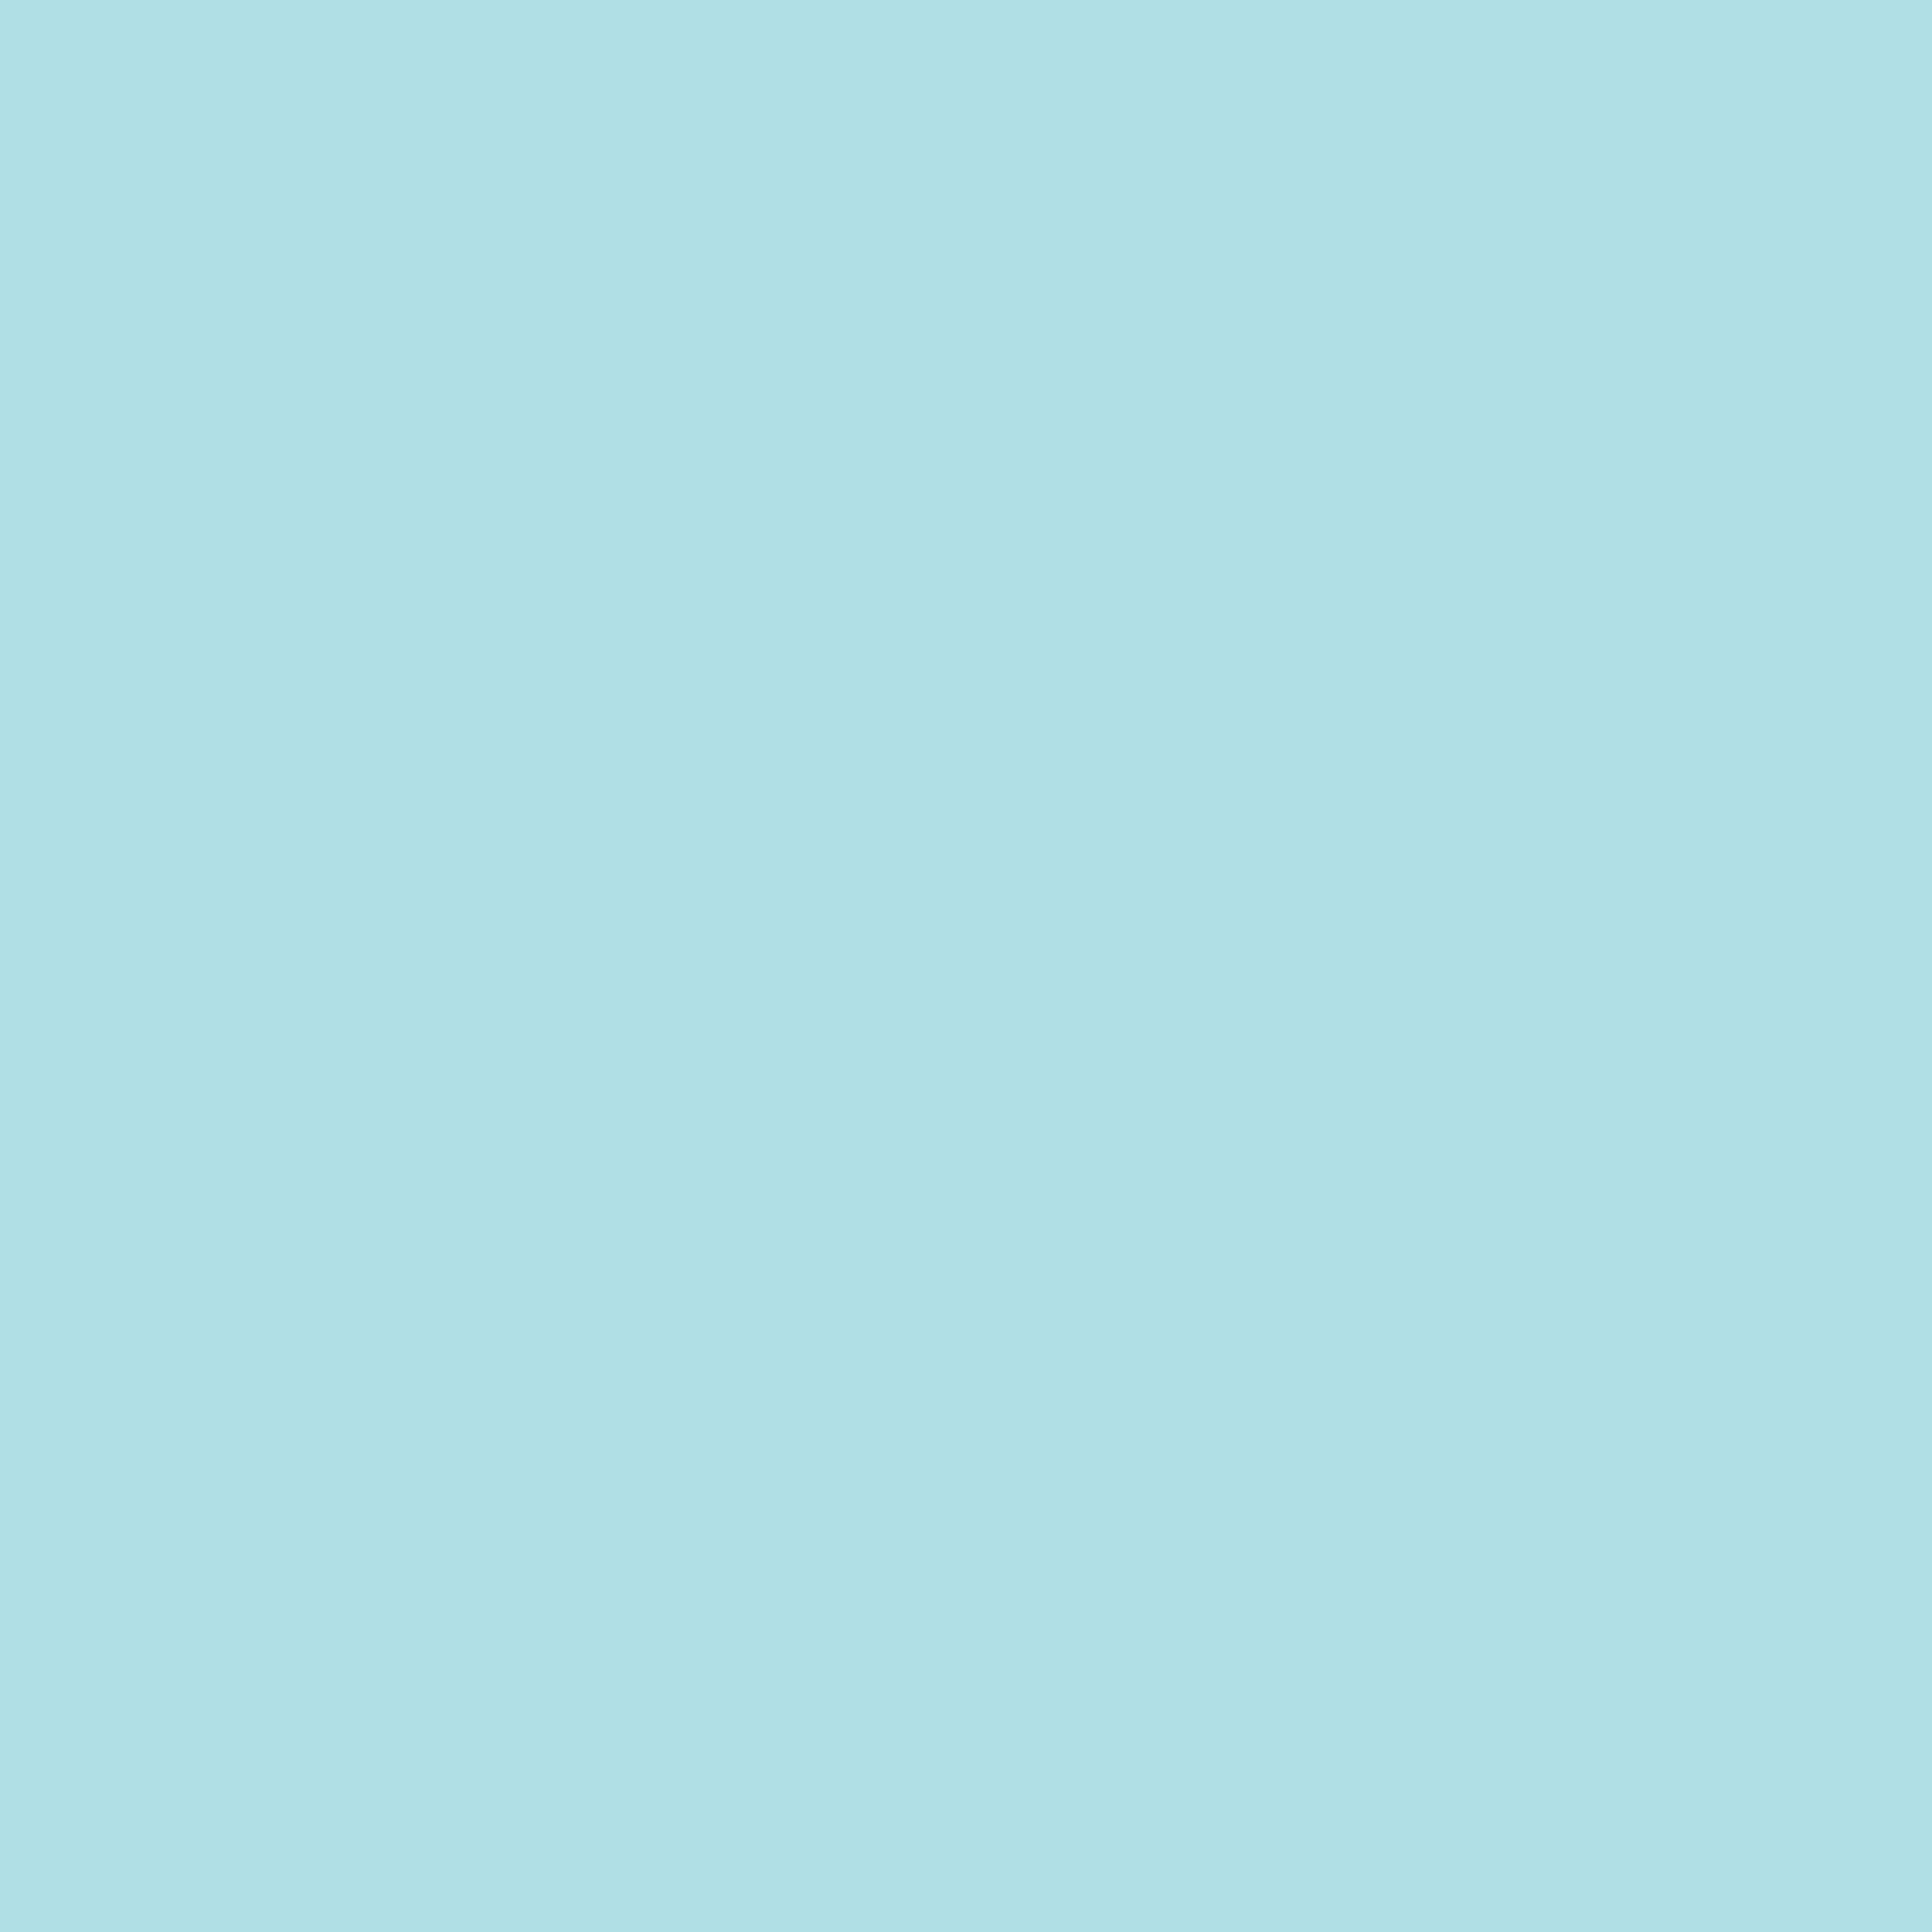 2048x2048 Powder Blue Web Solid Color Background